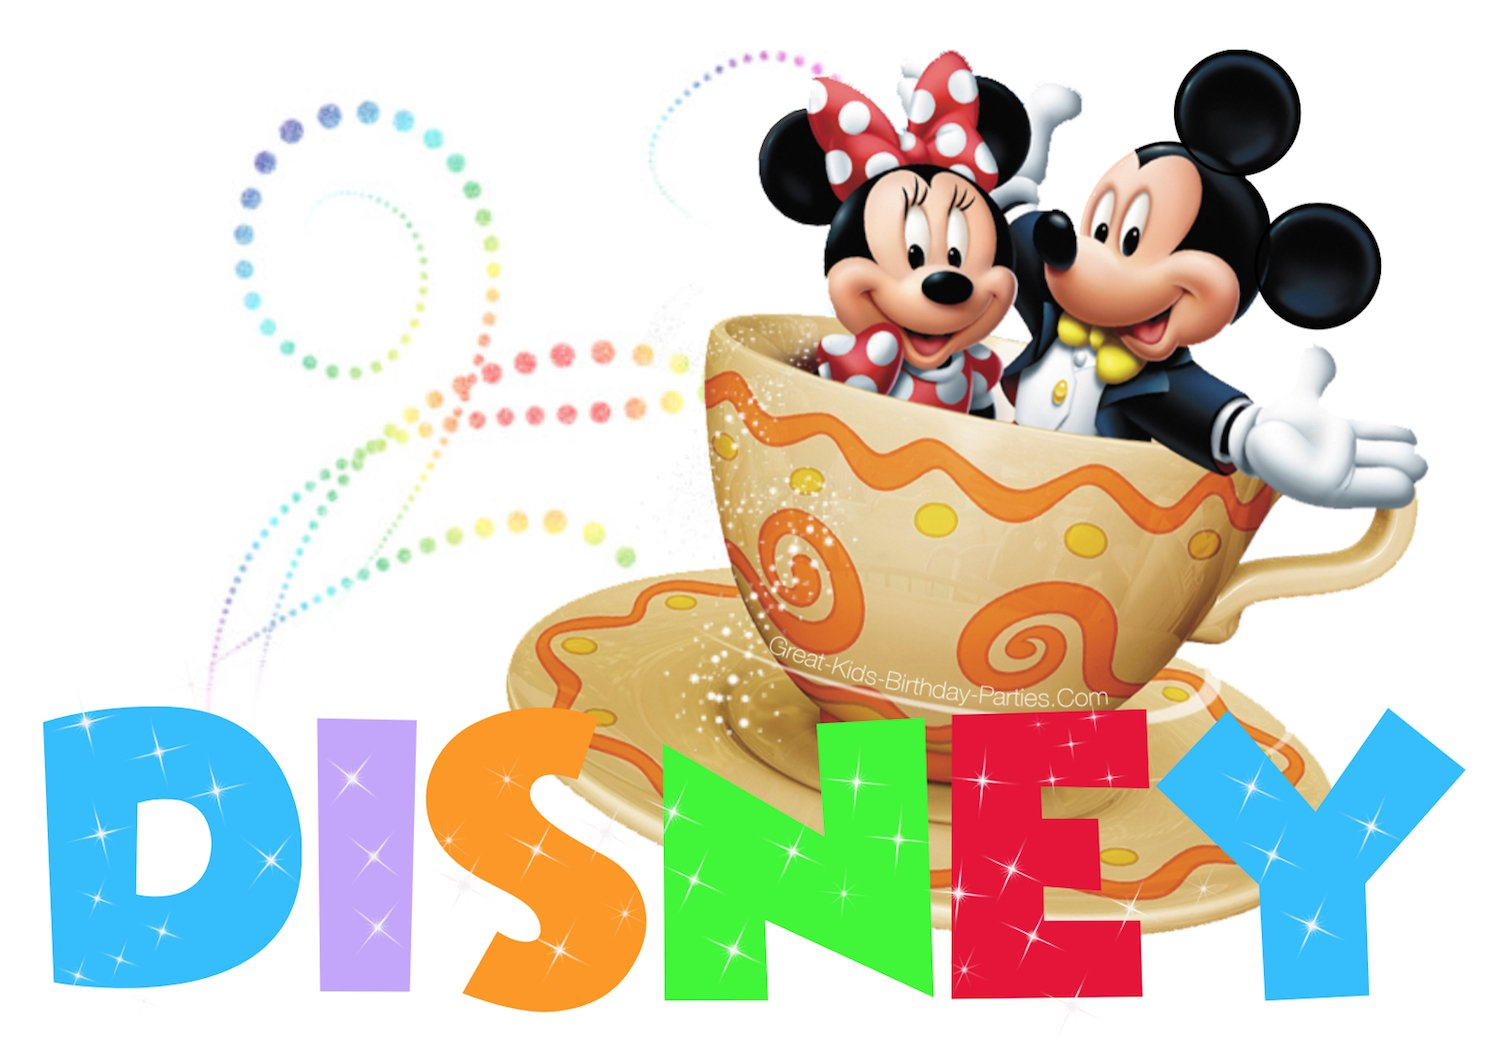 Lots of free Disney fonts, great for Mickey invitations, Minnie invitations, Mickey printables, Minnie printables, Disney scrapbooking and lots more.